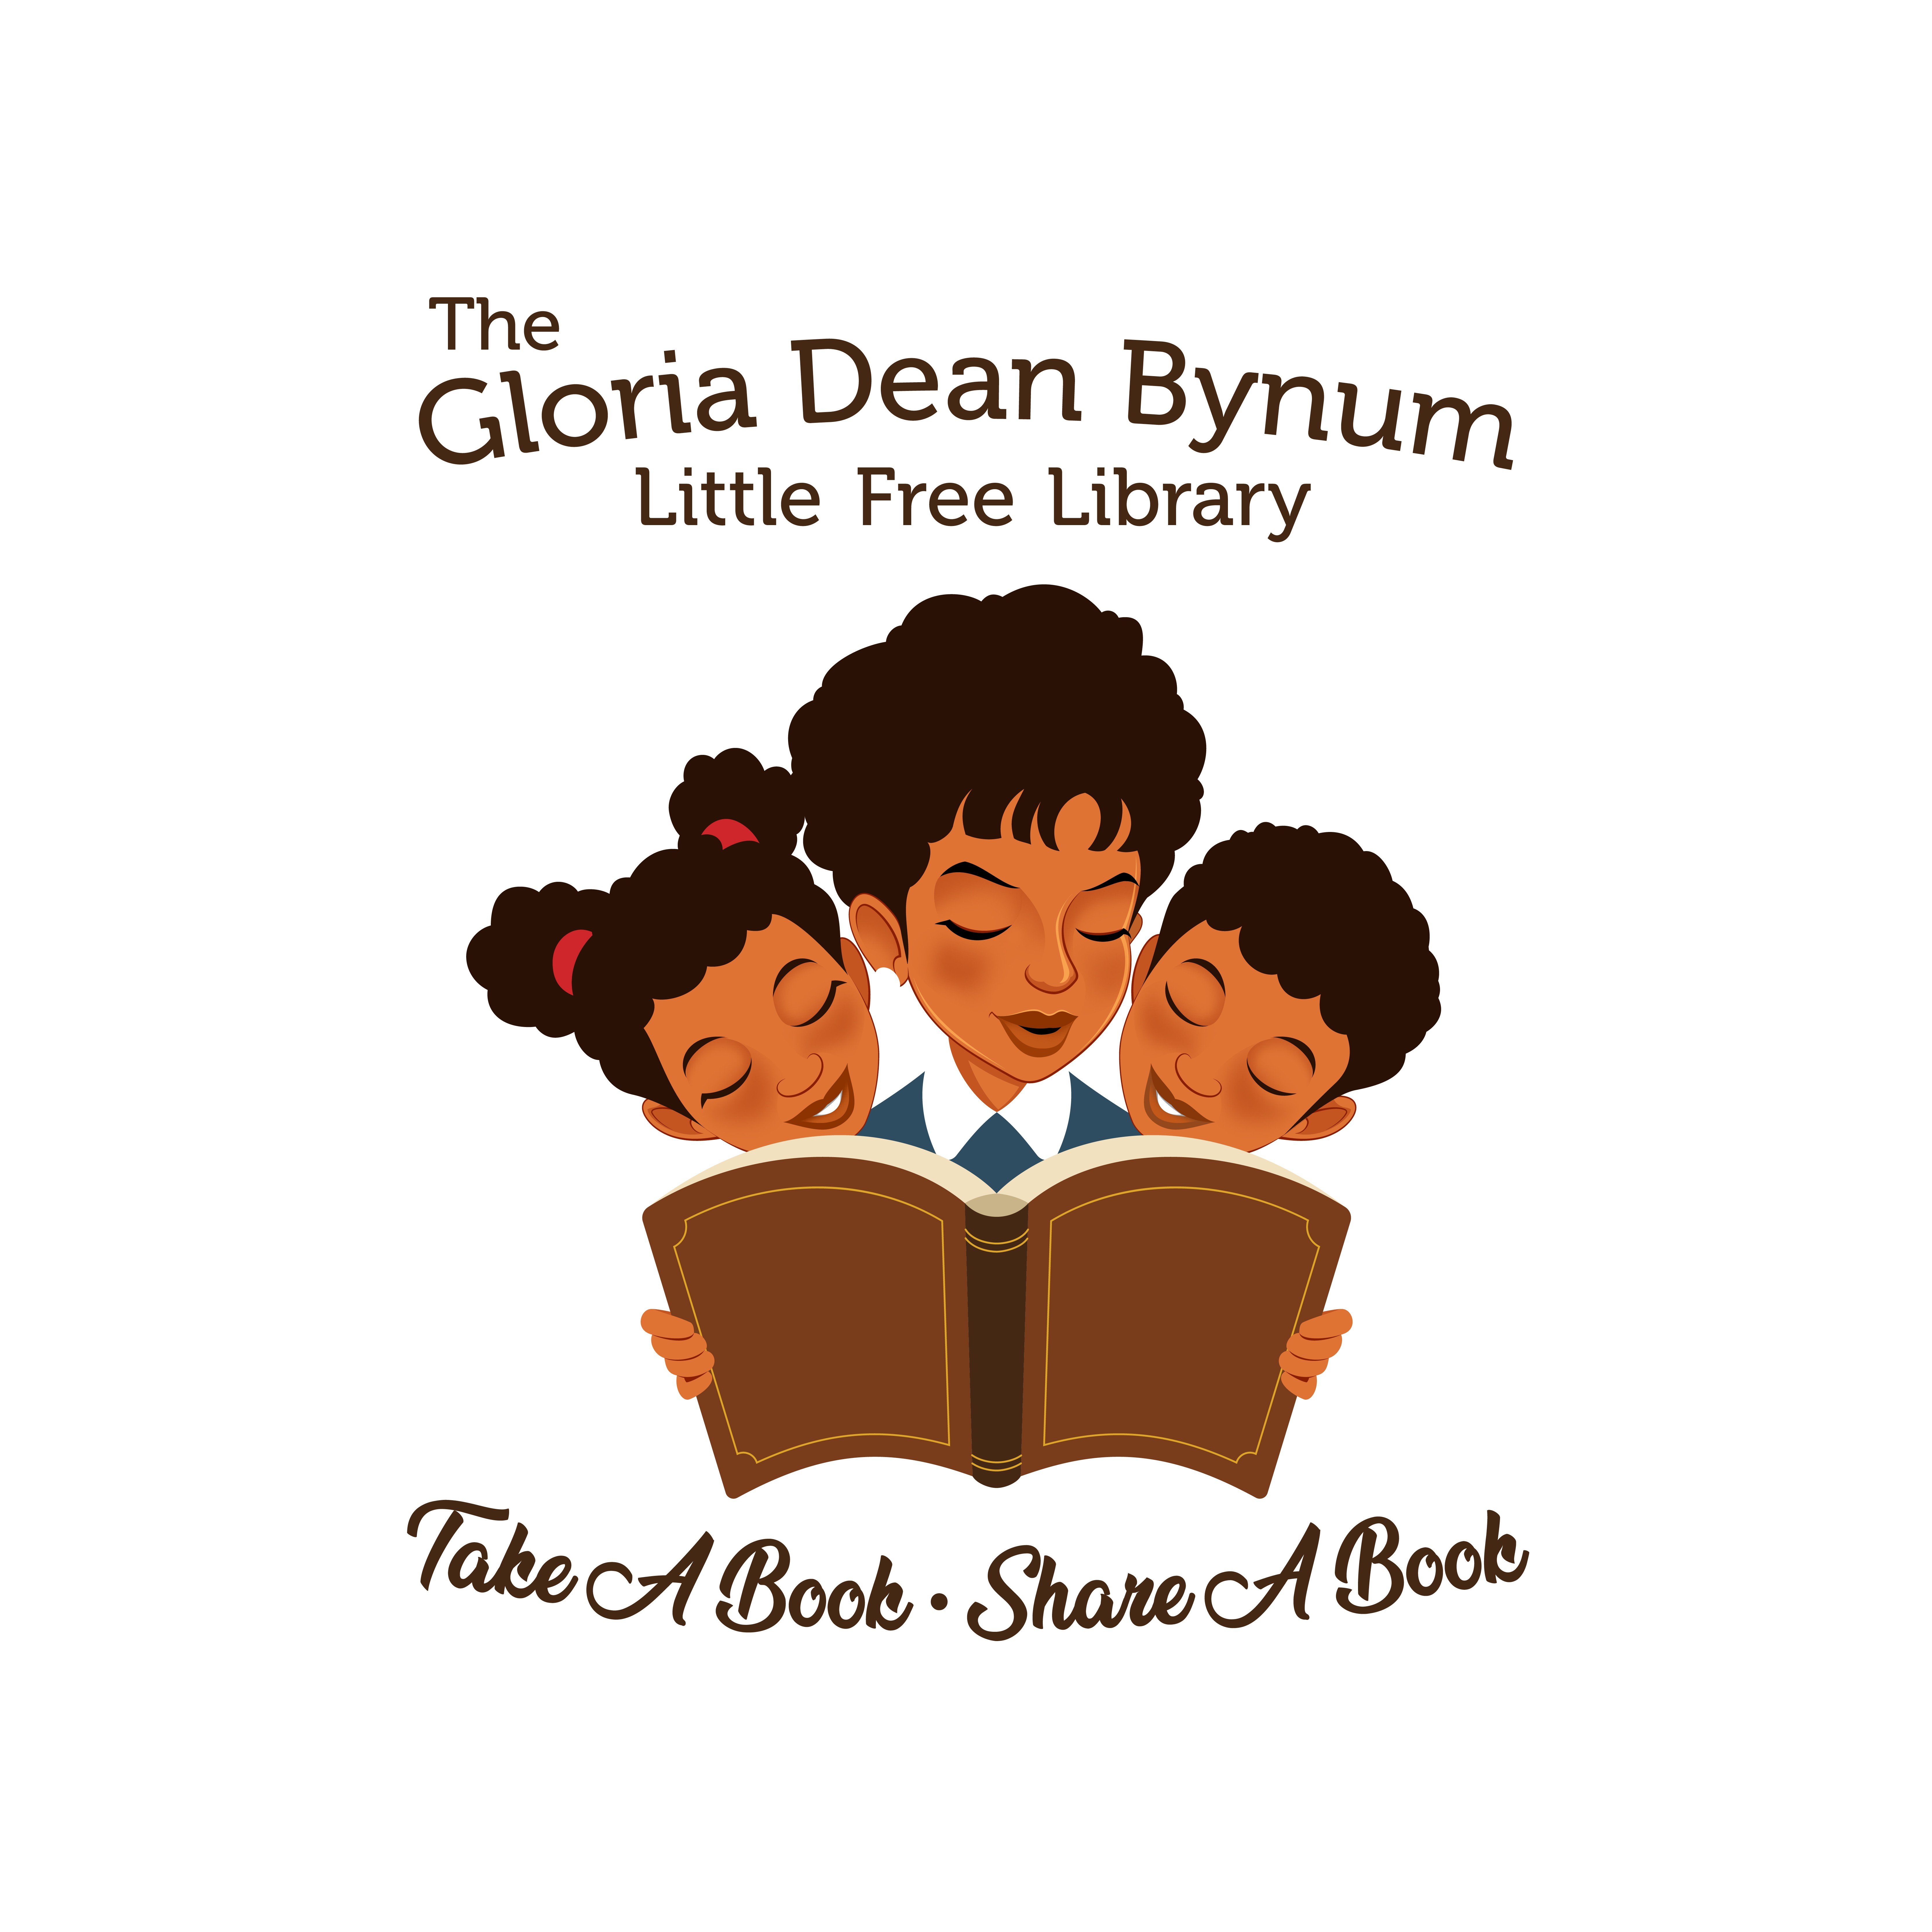 The Gloria Dean Bynum Little Free Library